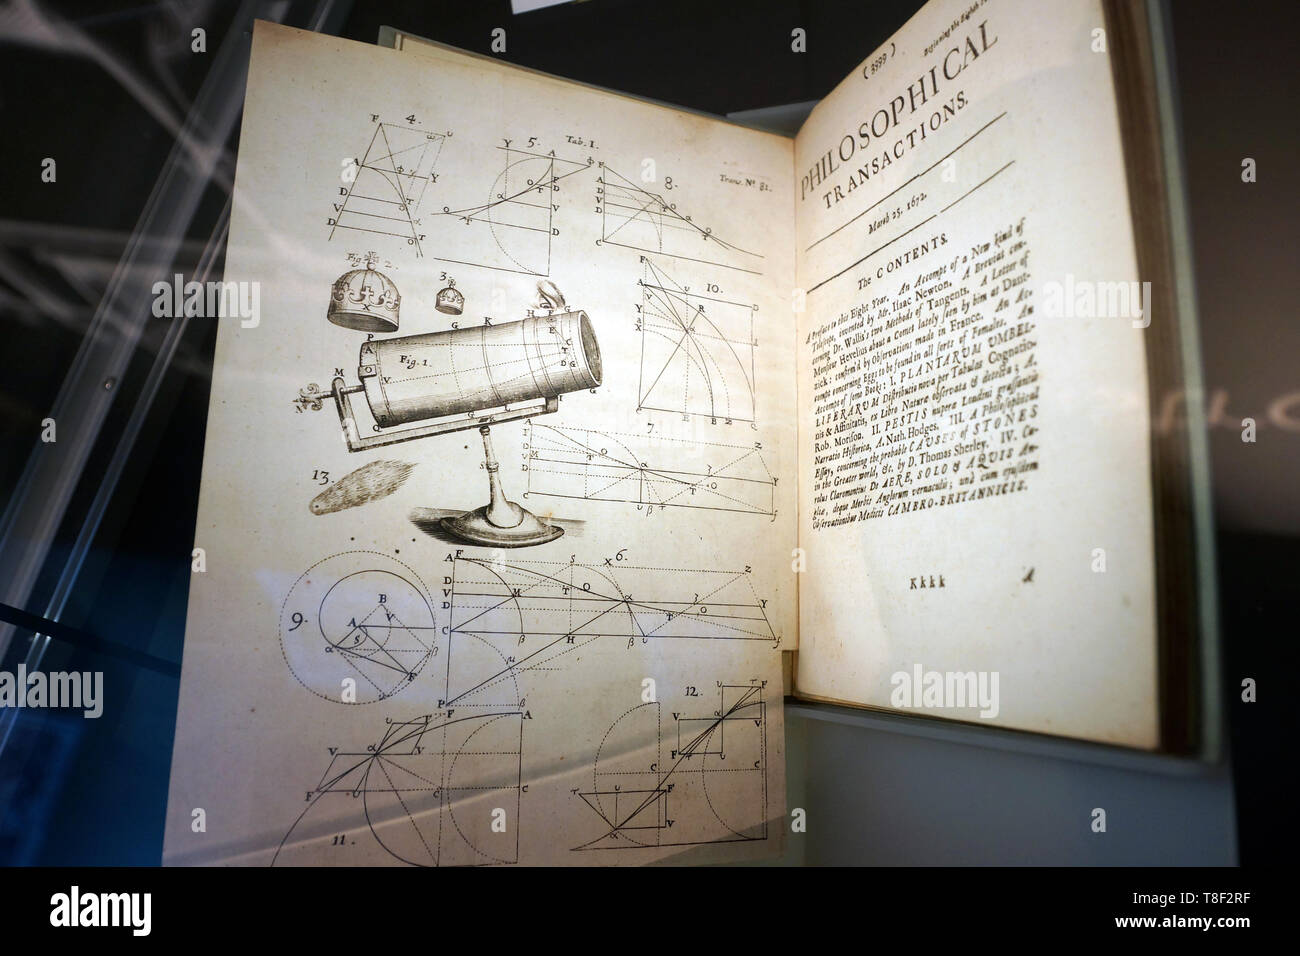 'An Account of a New Kind of Telescope' by Isaac Newton, printed in London, 1672 - Stock Image